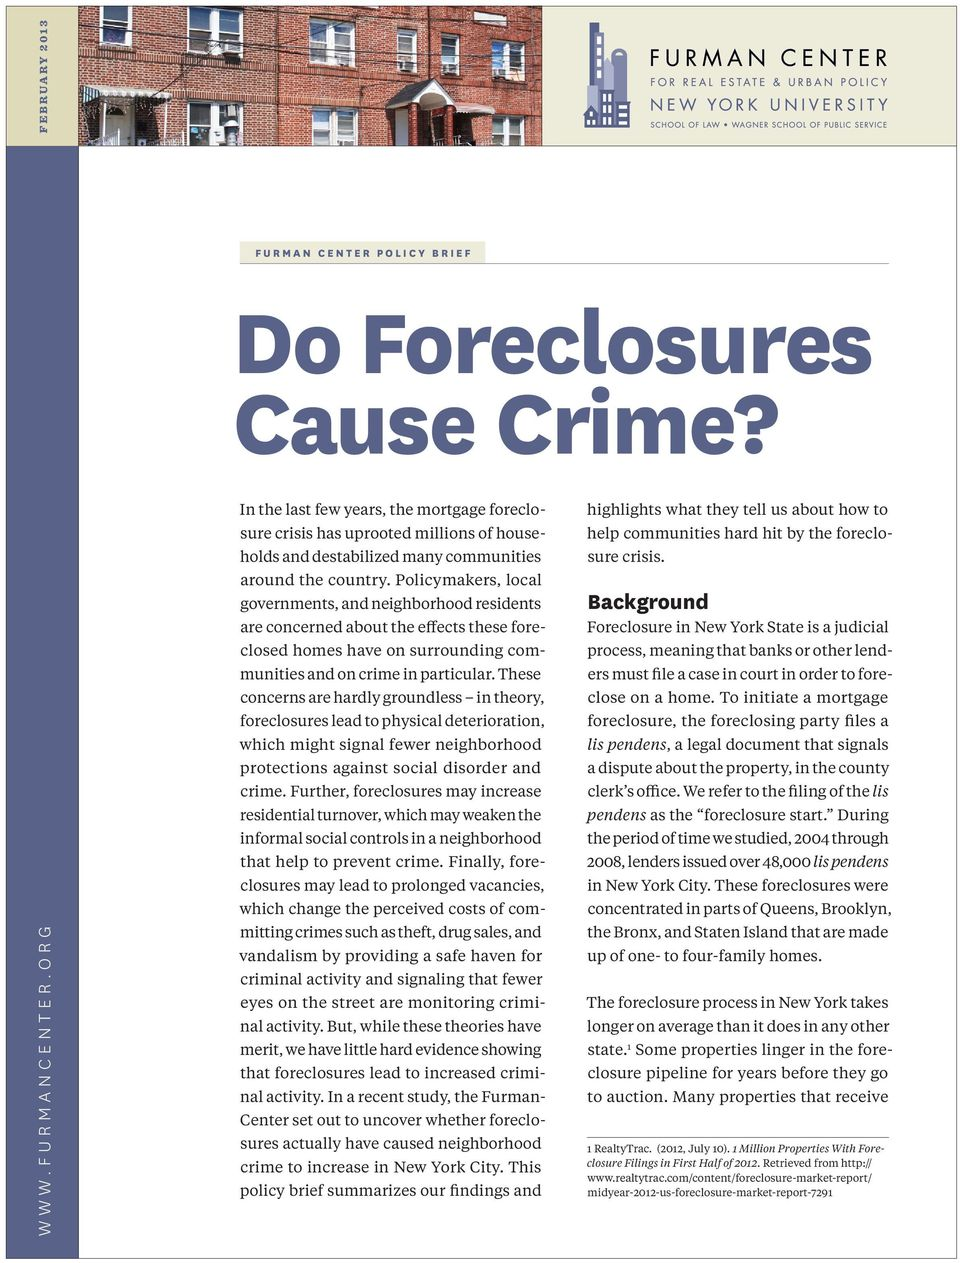 Policymakers, local governments, and neighborhood residents are concerned about the effects these foreclosed homes have on surrounding communities and on crime in particular.